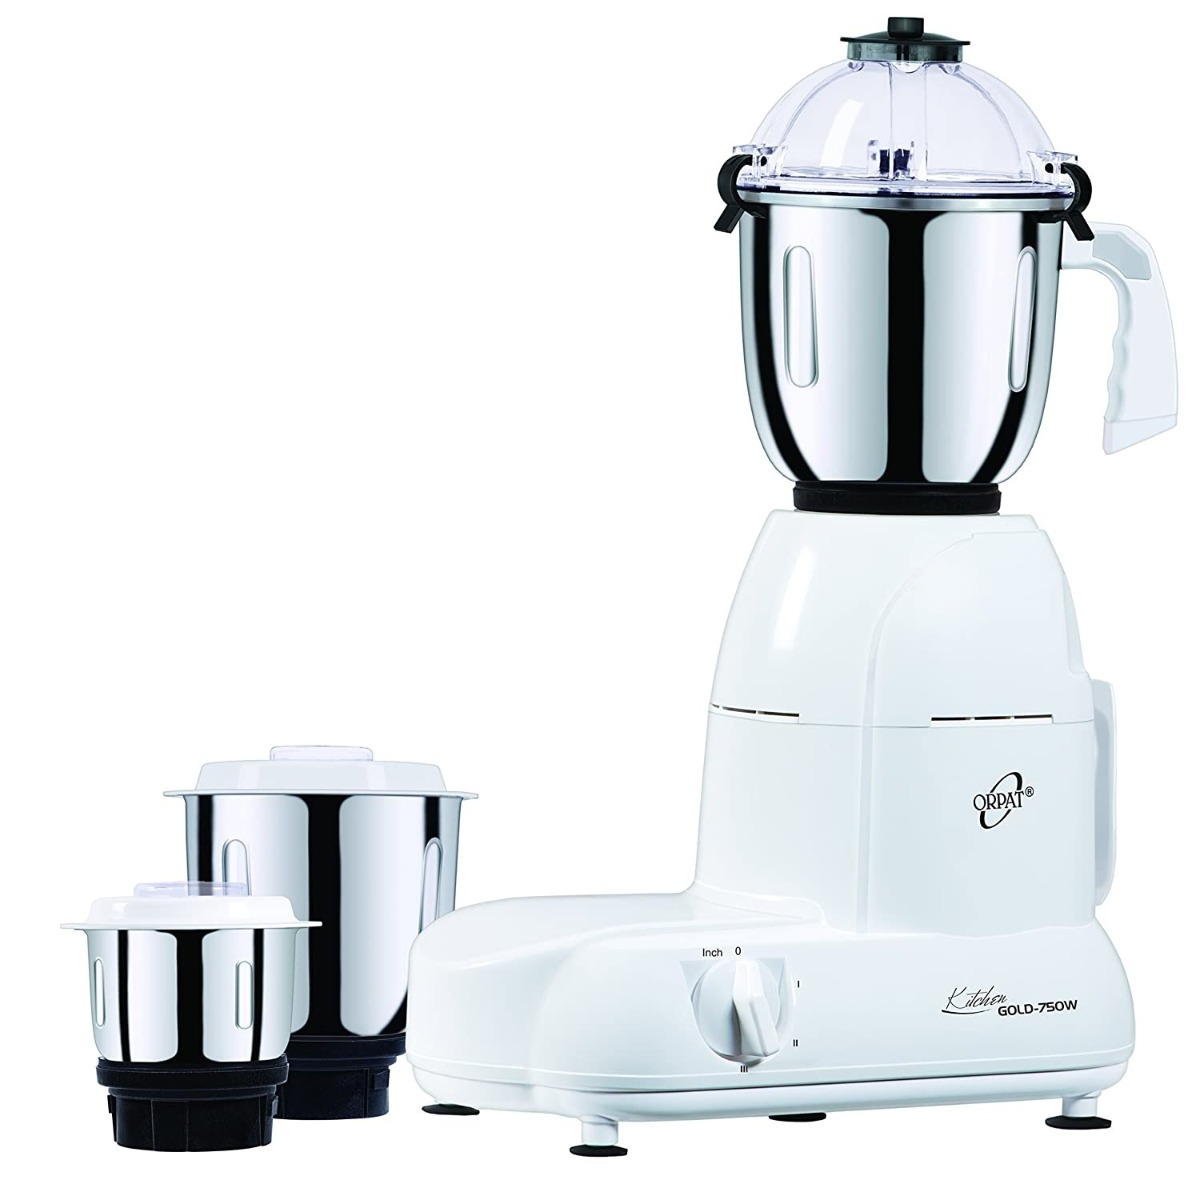 Orpat Mixer Grinder kitchen Master Gold